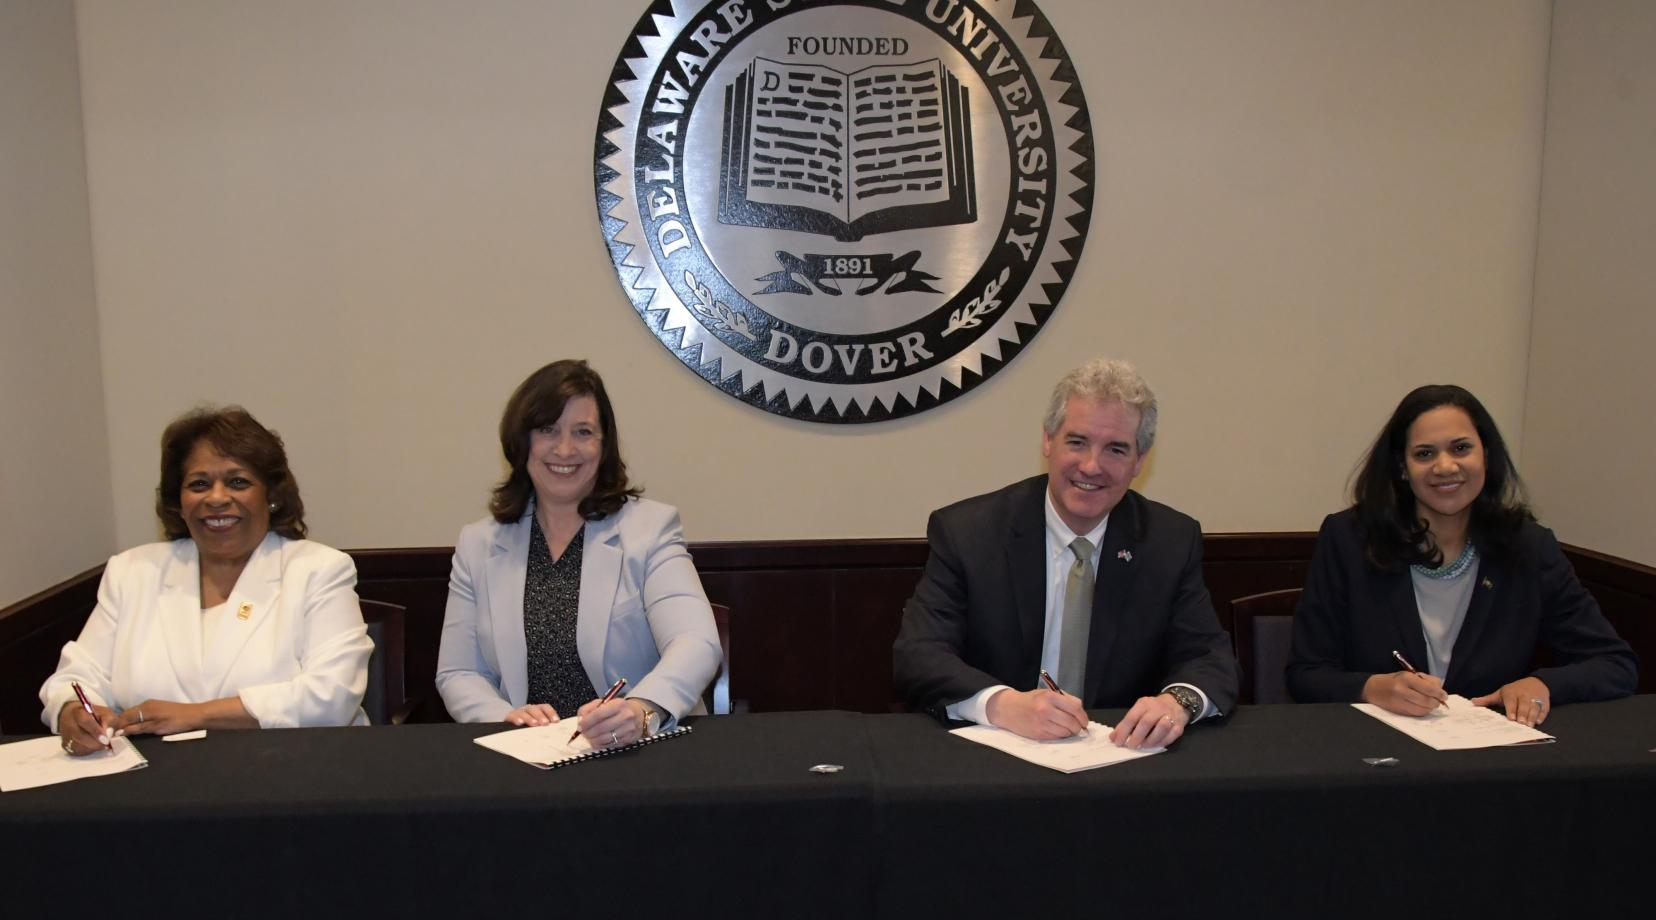 <p>(L-r) University President Wilma Mishoe, EPA Deputy Director Cinday Caporale, DNREC Secretary Shawn M. Garvin and DHSS Secretary Kara Odom Walker sign a new agreement that will provide Delaware State University students internship and research opportunities as well as promote environmental stewardship at the institution.</p>